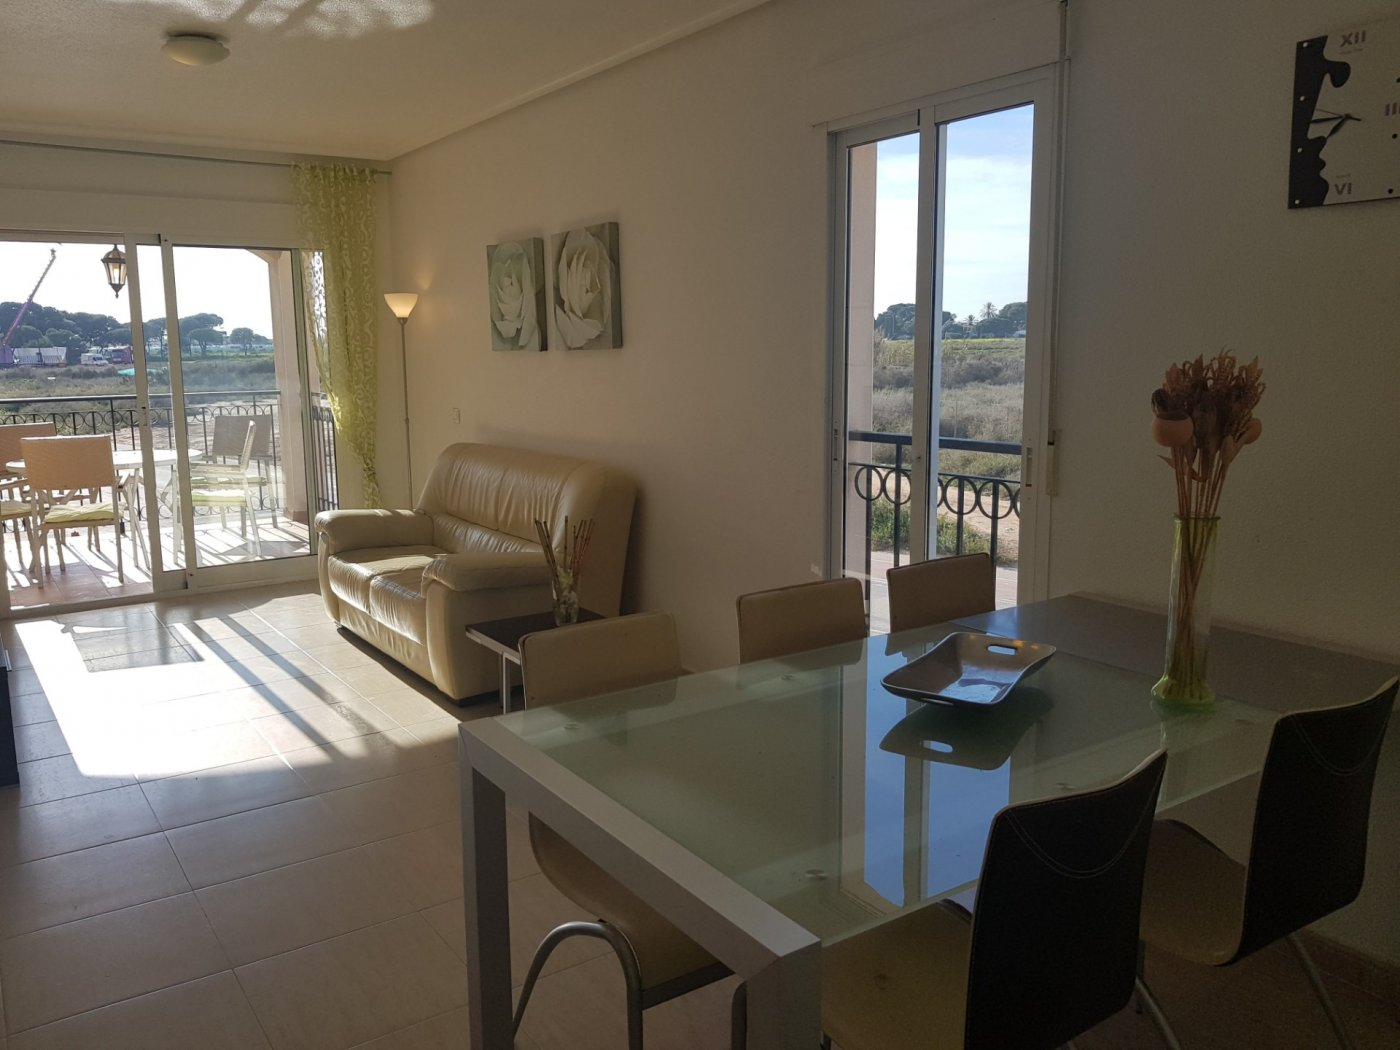 Gallery Image 10 of Fantastic corner apartment on walking distance of beach and shopping centre